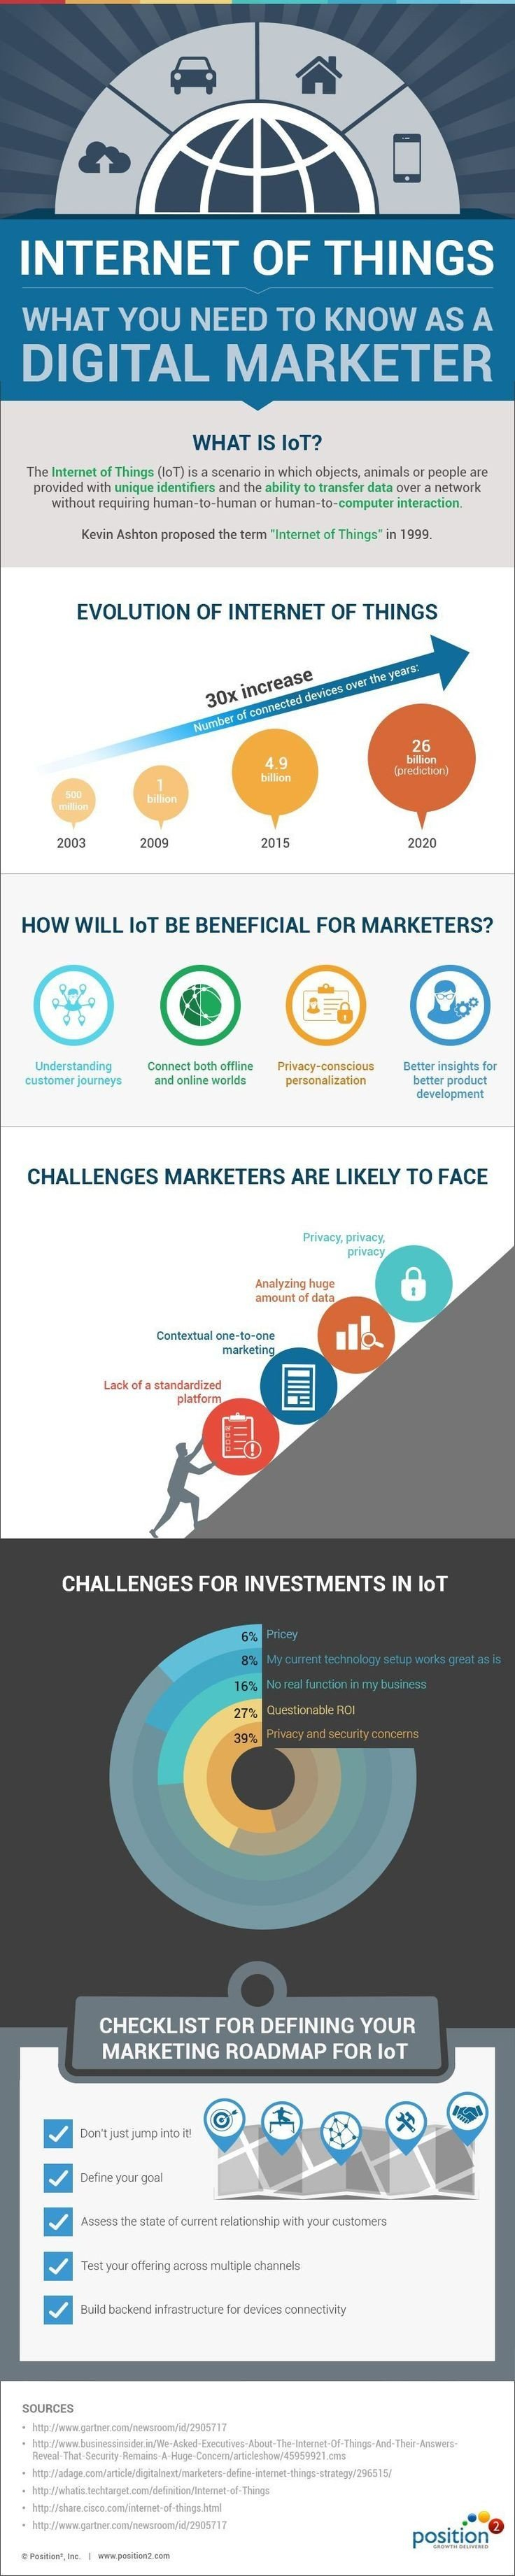 The internet of things #IoT what you need to know as a digital marketer #SMM #Smart_City #Infographic